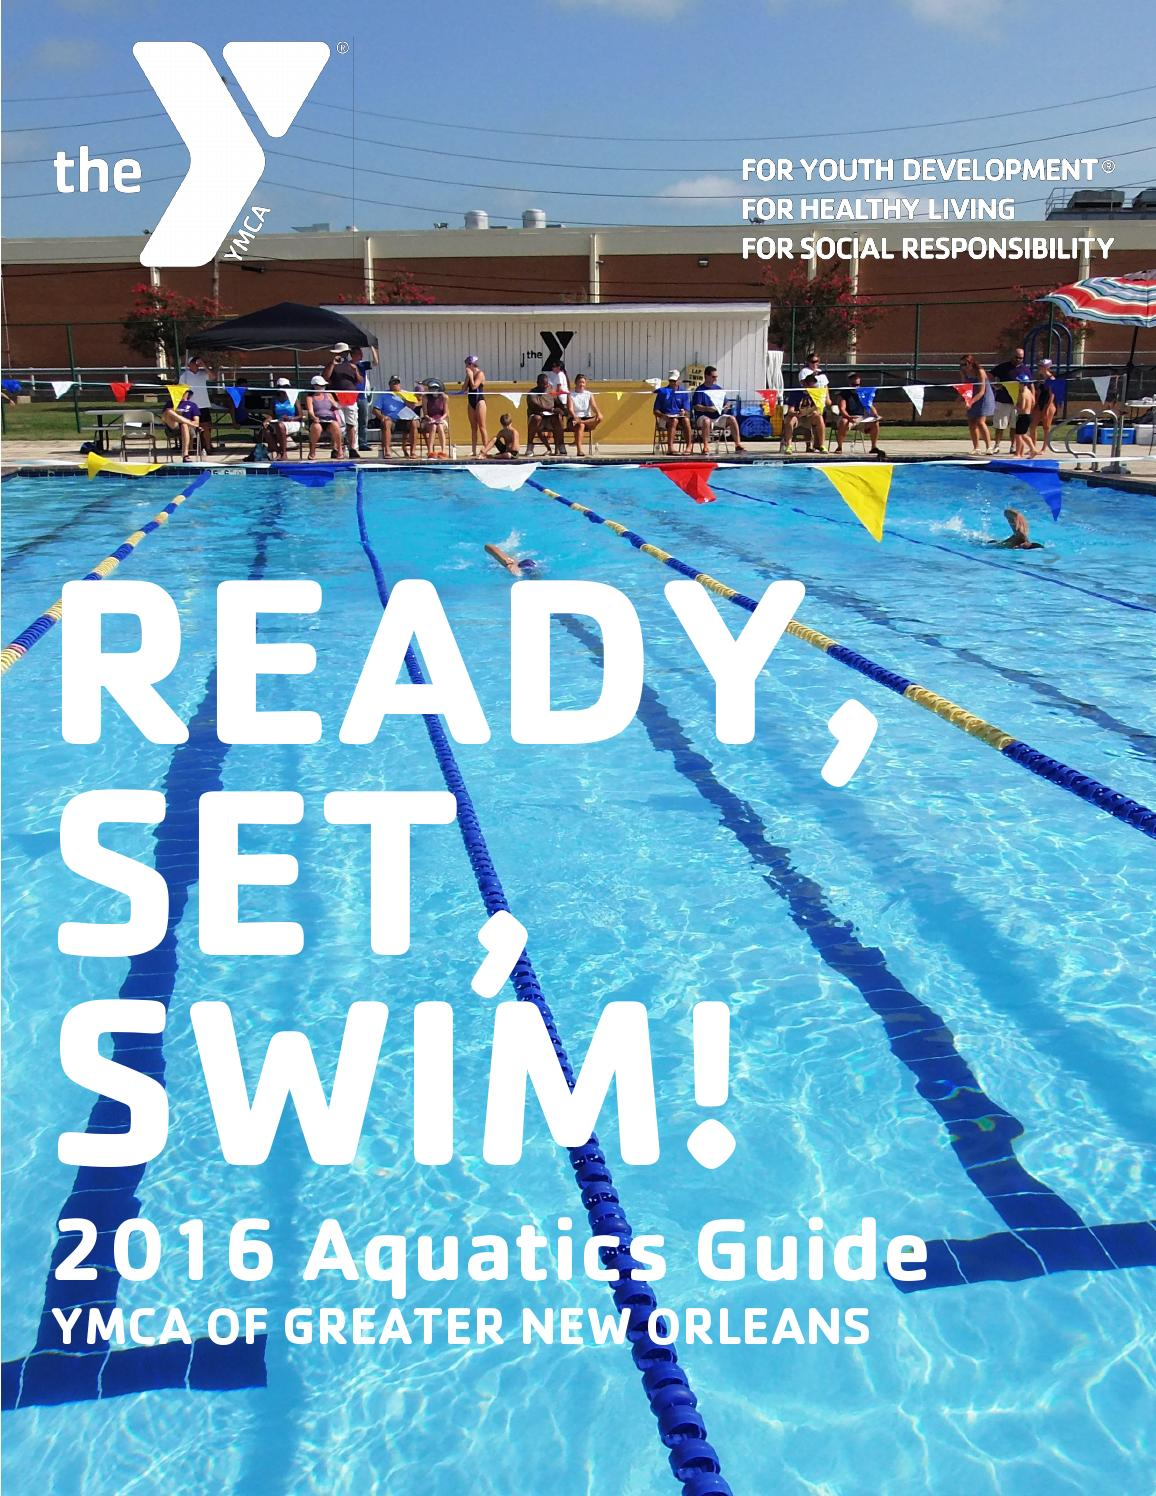 2016 ymca of greater new orleans aquatics guide by amanda spillman